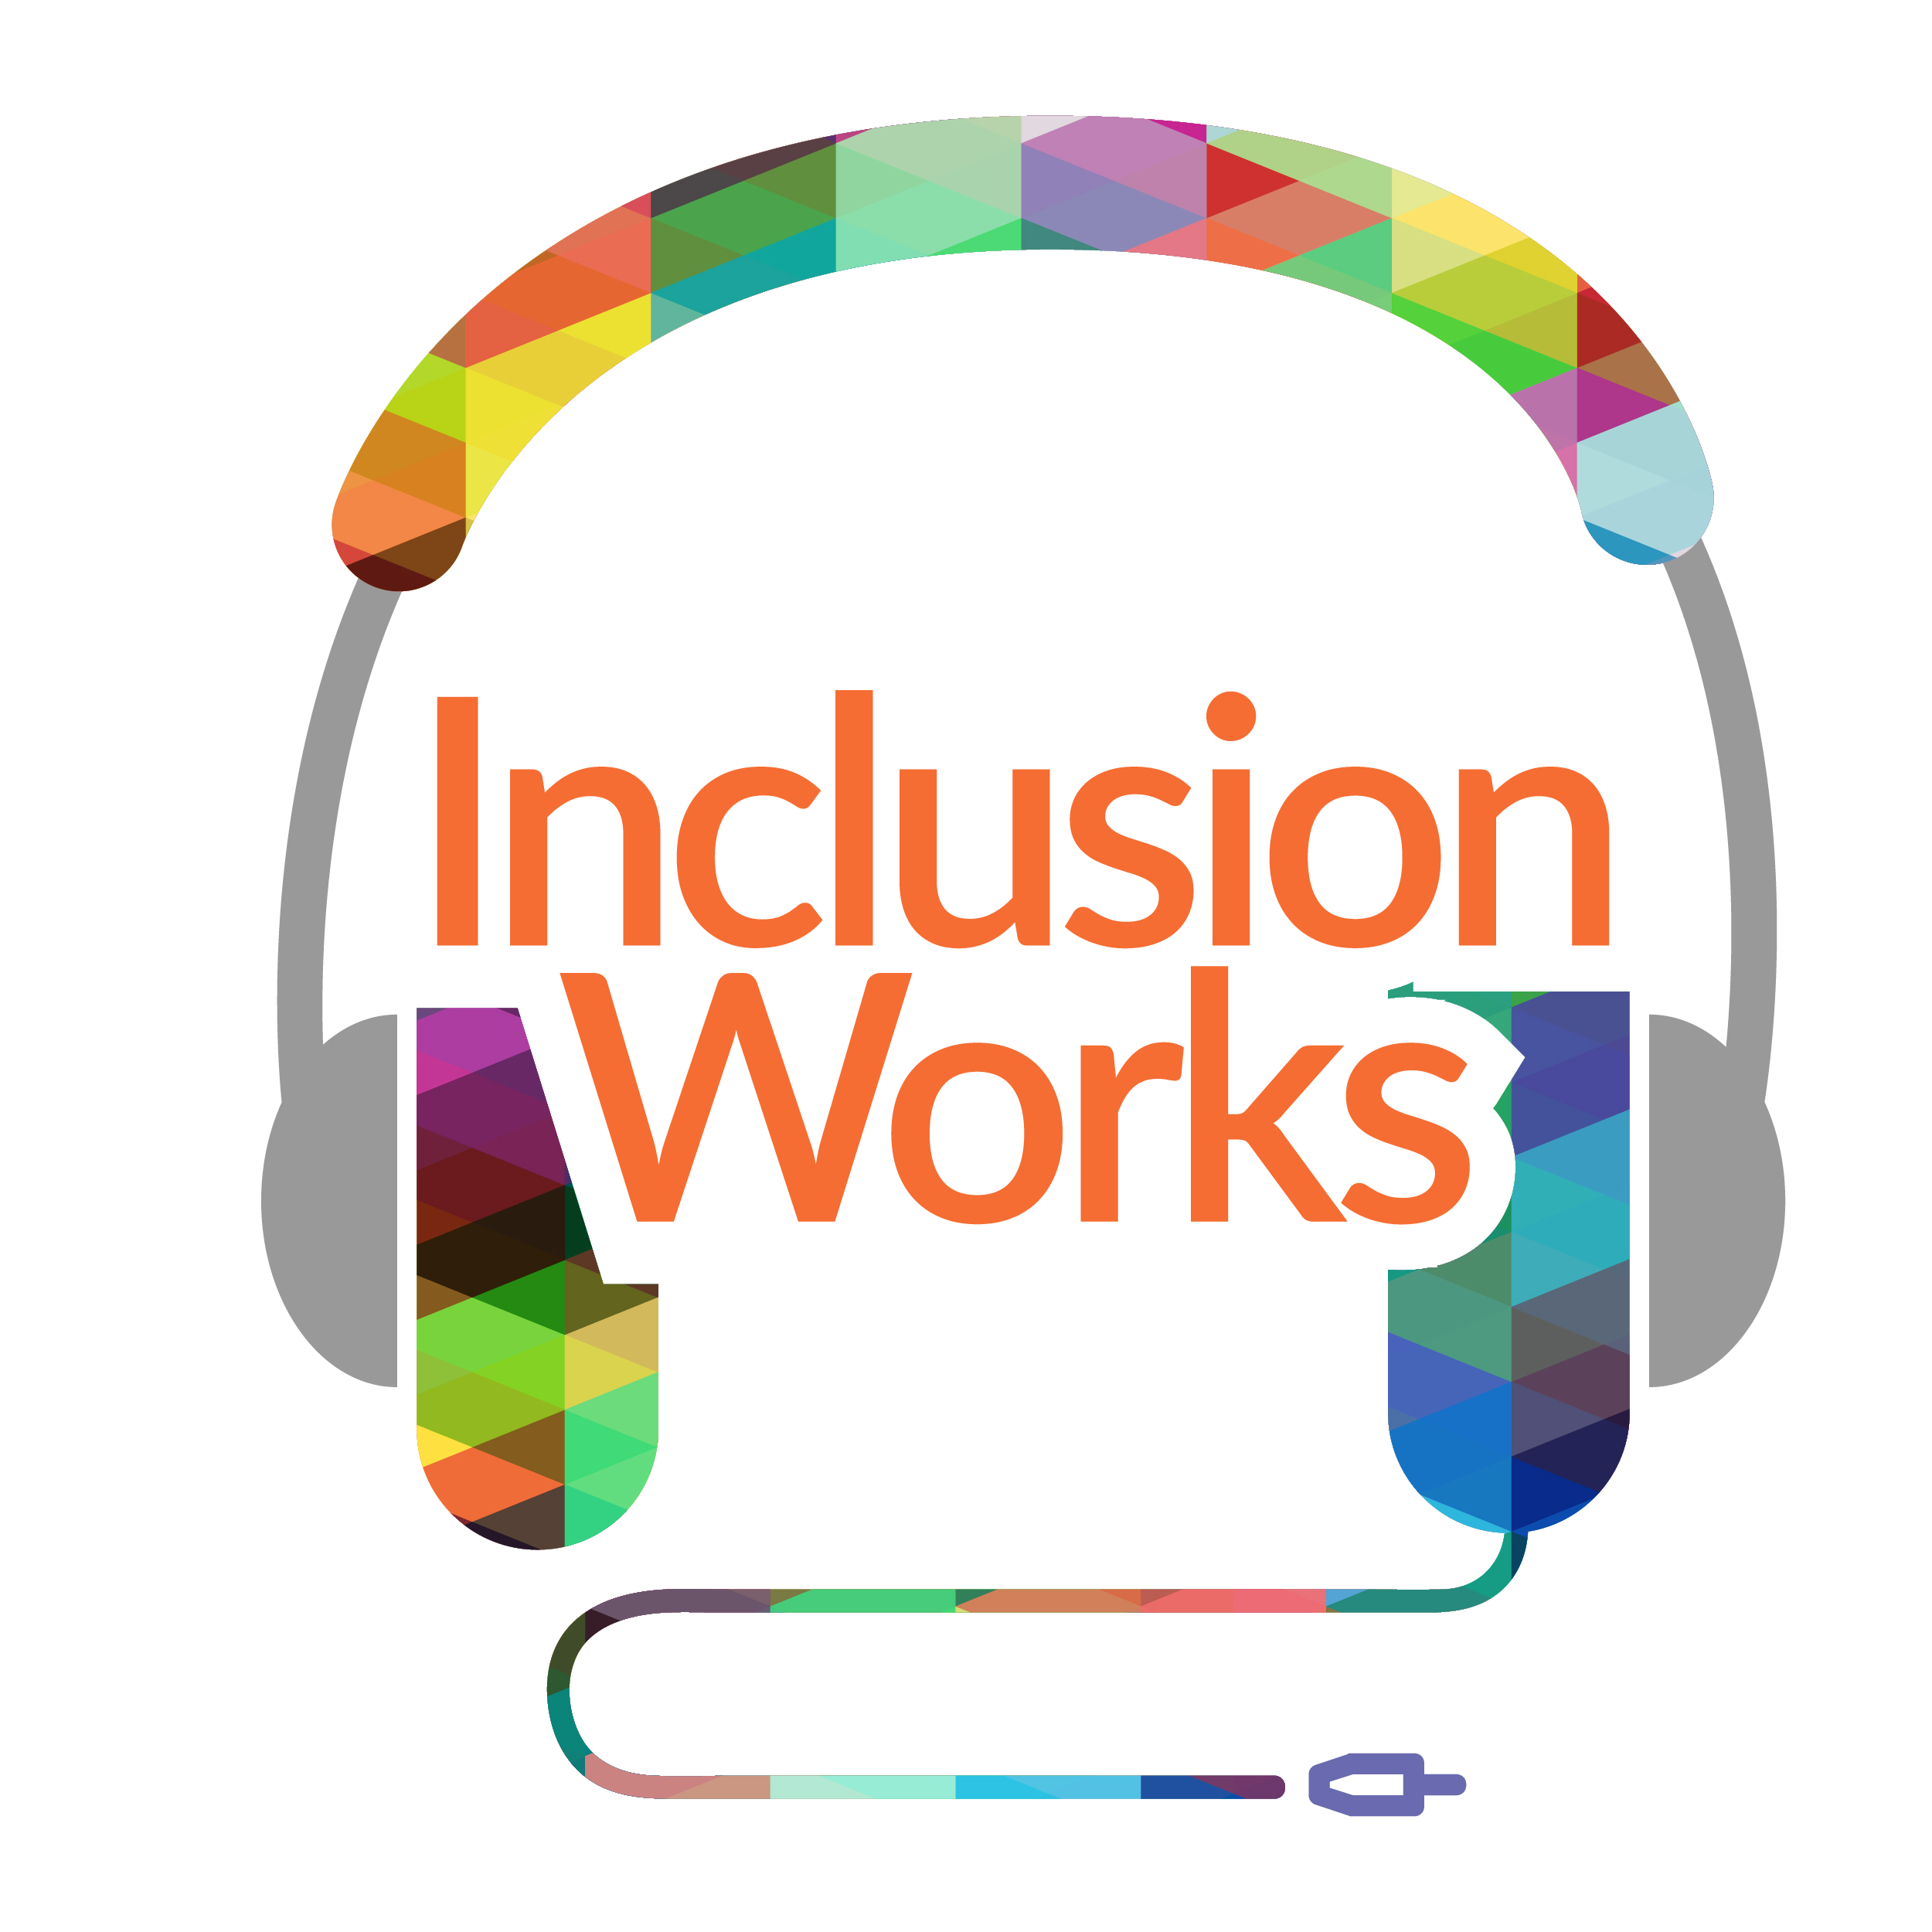 Inclusion Works - We're Using the Wrong Bar to Measure Worker Success w/ Katy Murray and Fiona Smith